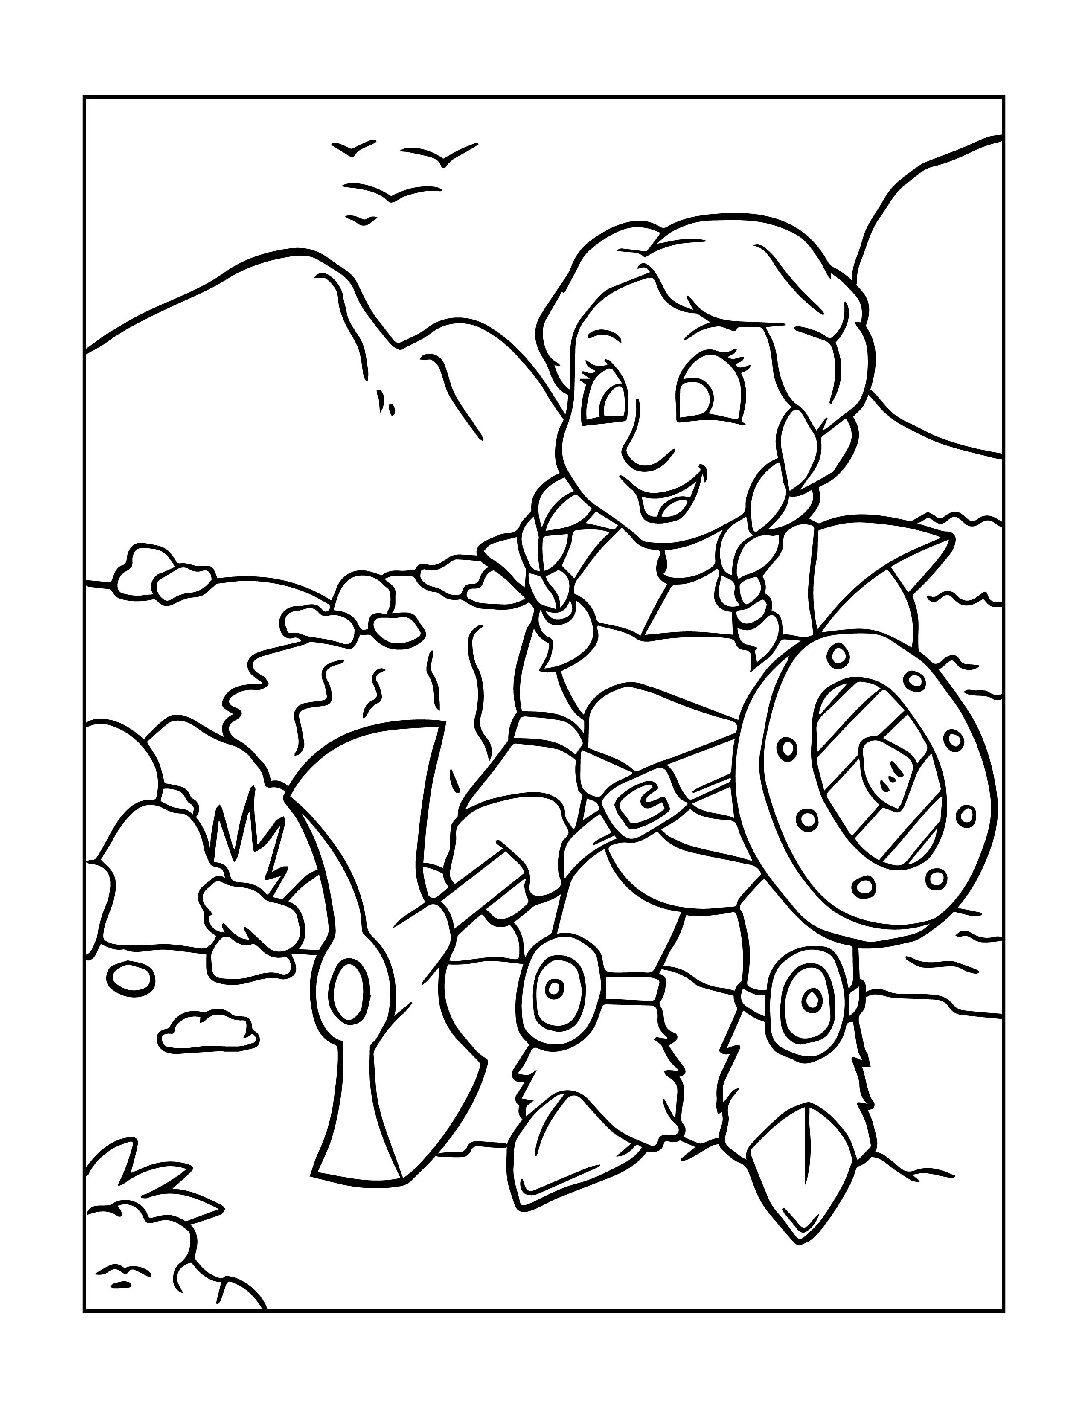 Coloring-Pages-Pirates-and-Knights-for-Boys-4-01-pdf Free Printable Pirates &  Knights Colouring Pages